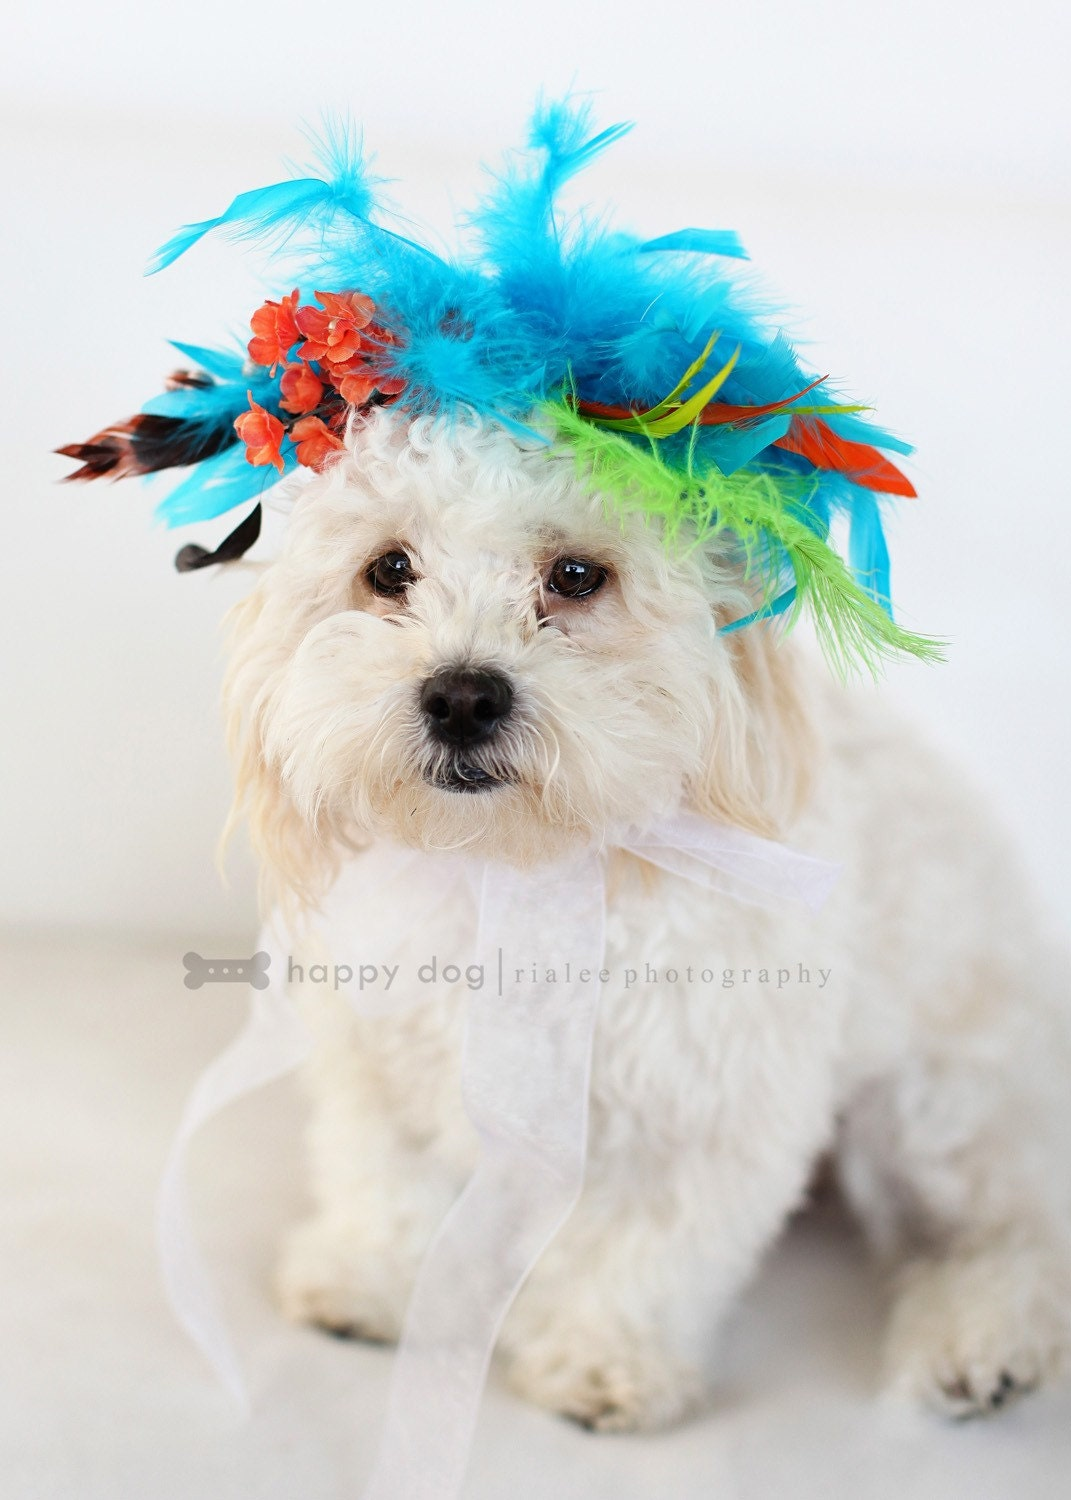 CUTIE PUPtootie hairpiece for pets, puppies, collar, little dog, photoshot props, canine, small dog, doghairpiece